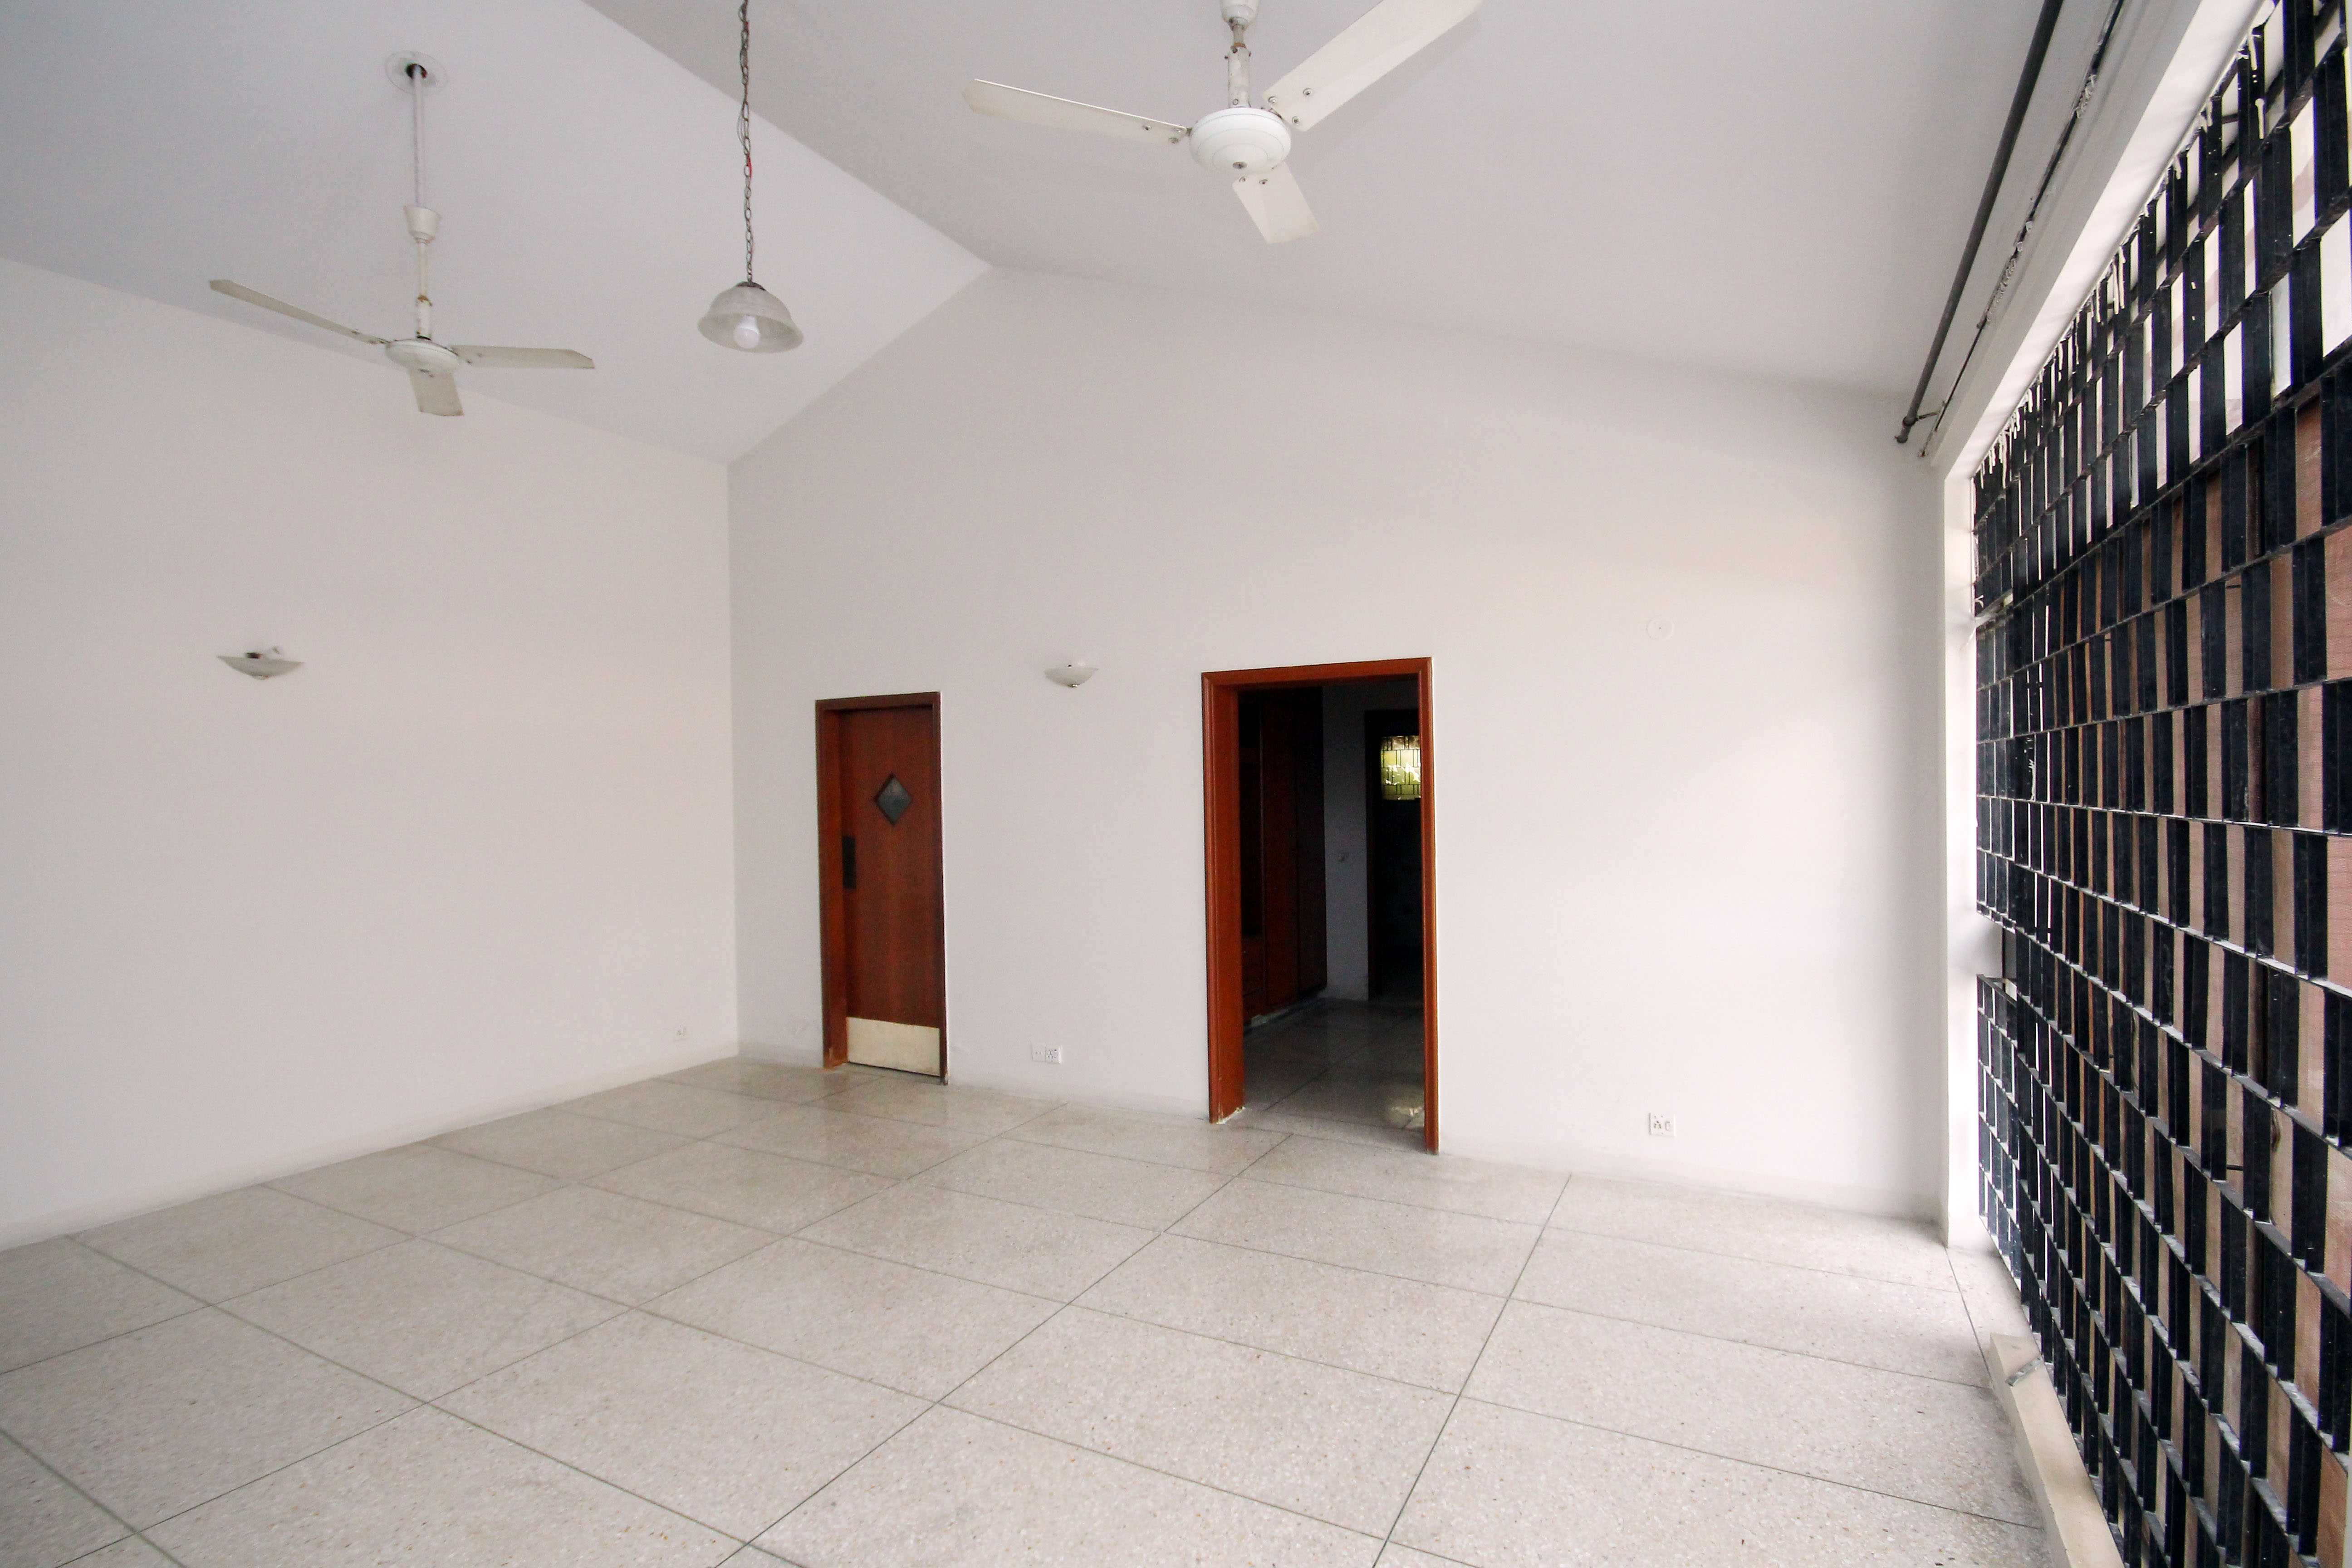 Chohan Offer 2 kanal Upper Portion Slightly Used on Very Reasonable Rent DHA Lahore